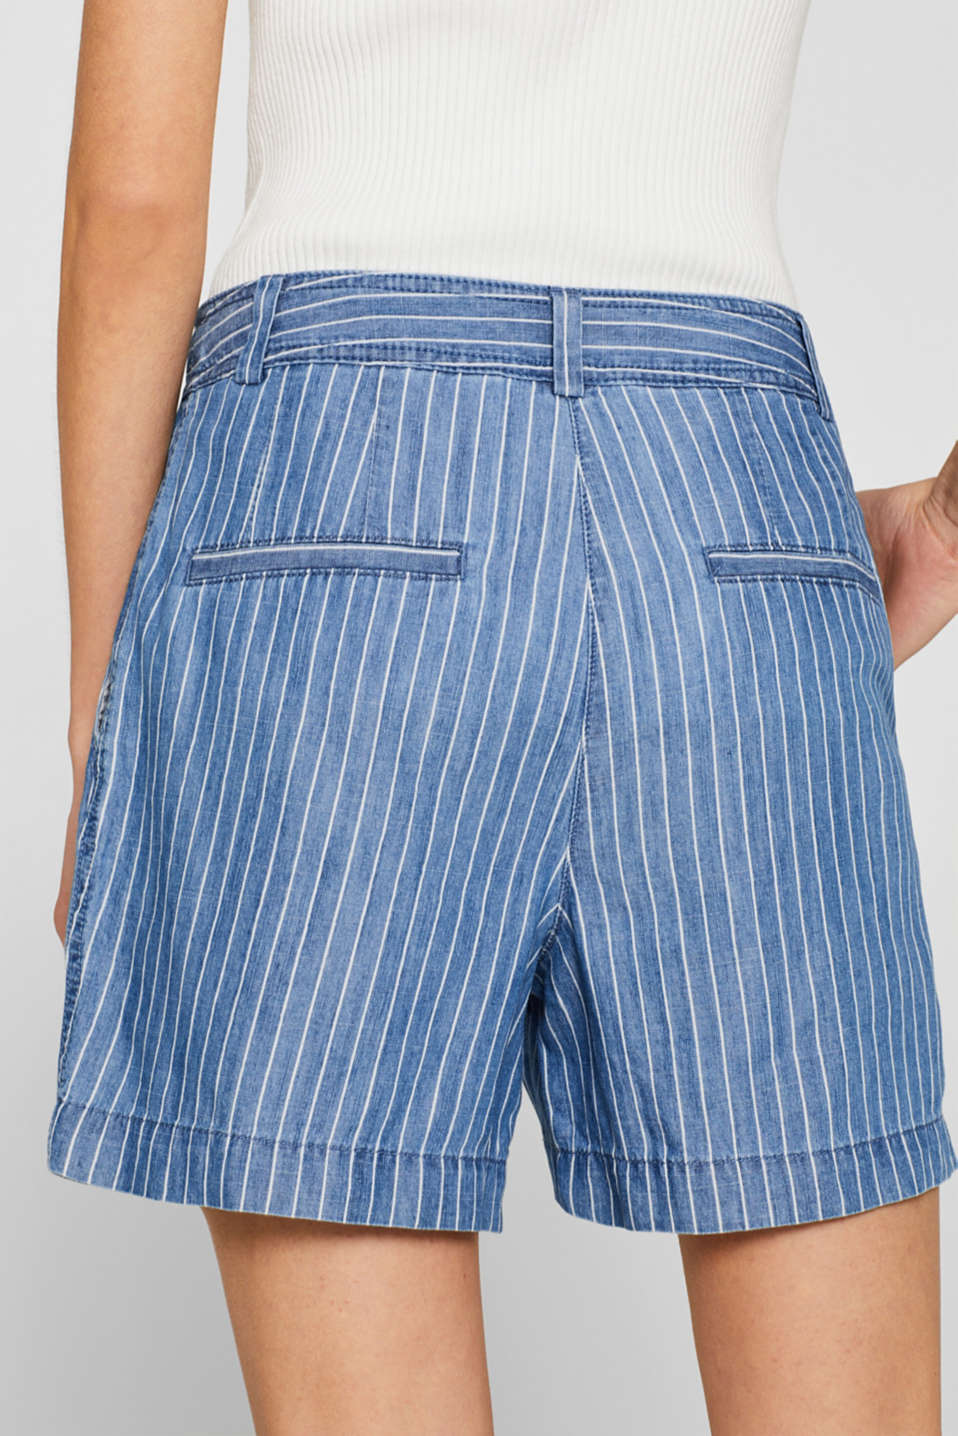 Shorts woven, GREY BLUE, detail image number 5